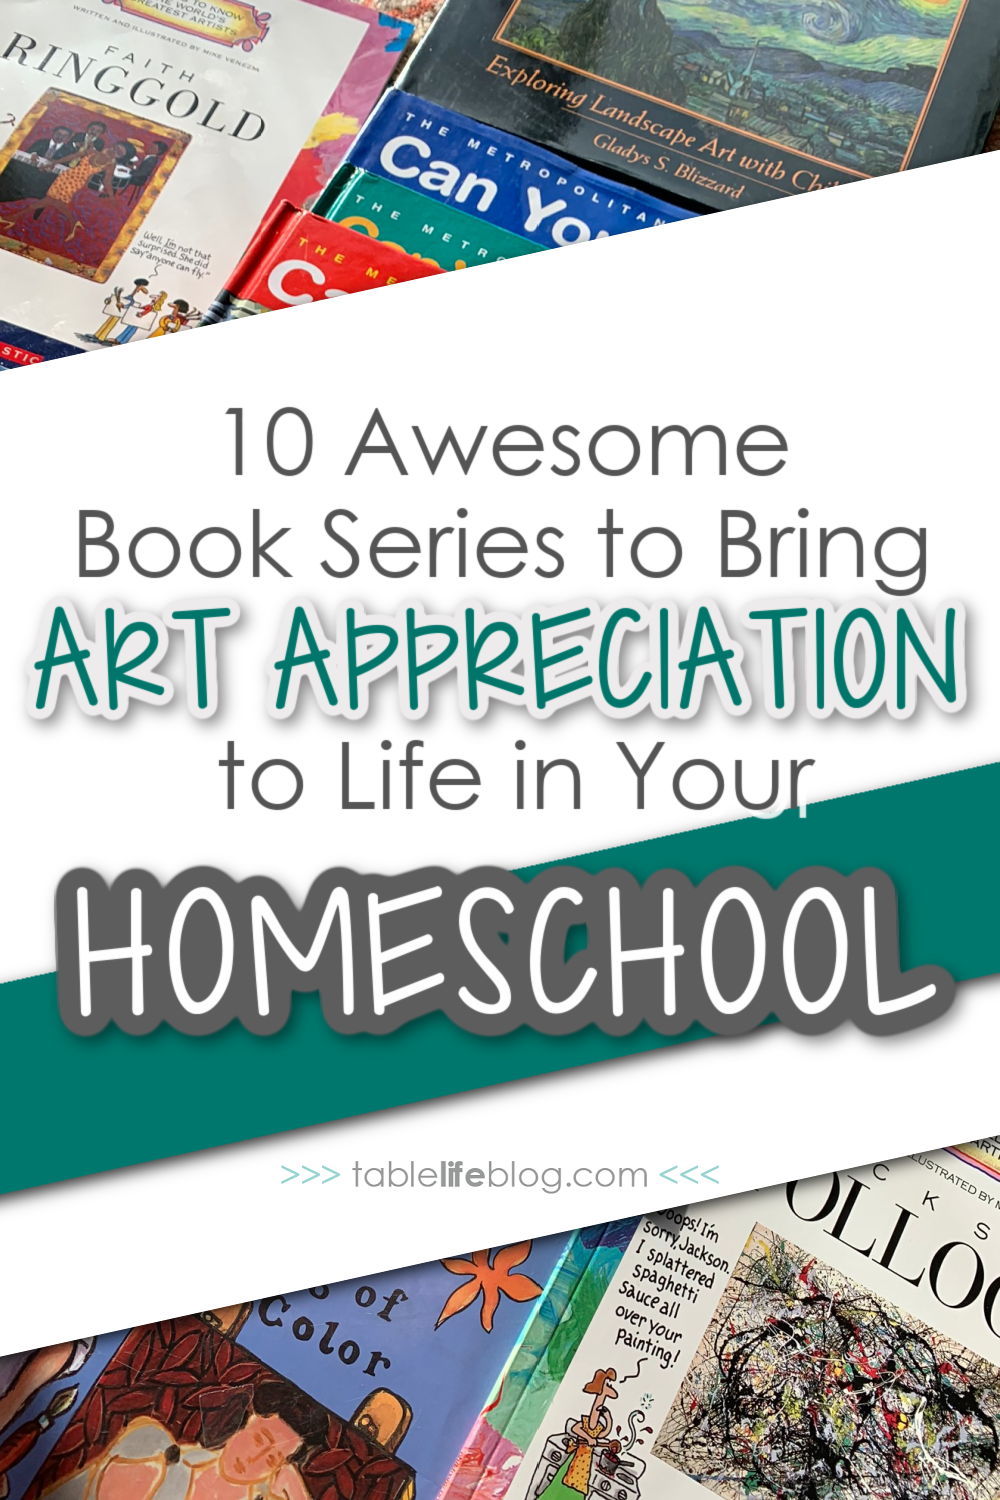 Looking for art appreciation books to read with your kids? These book series are our go-to reads for all of our homeschool art adventures.